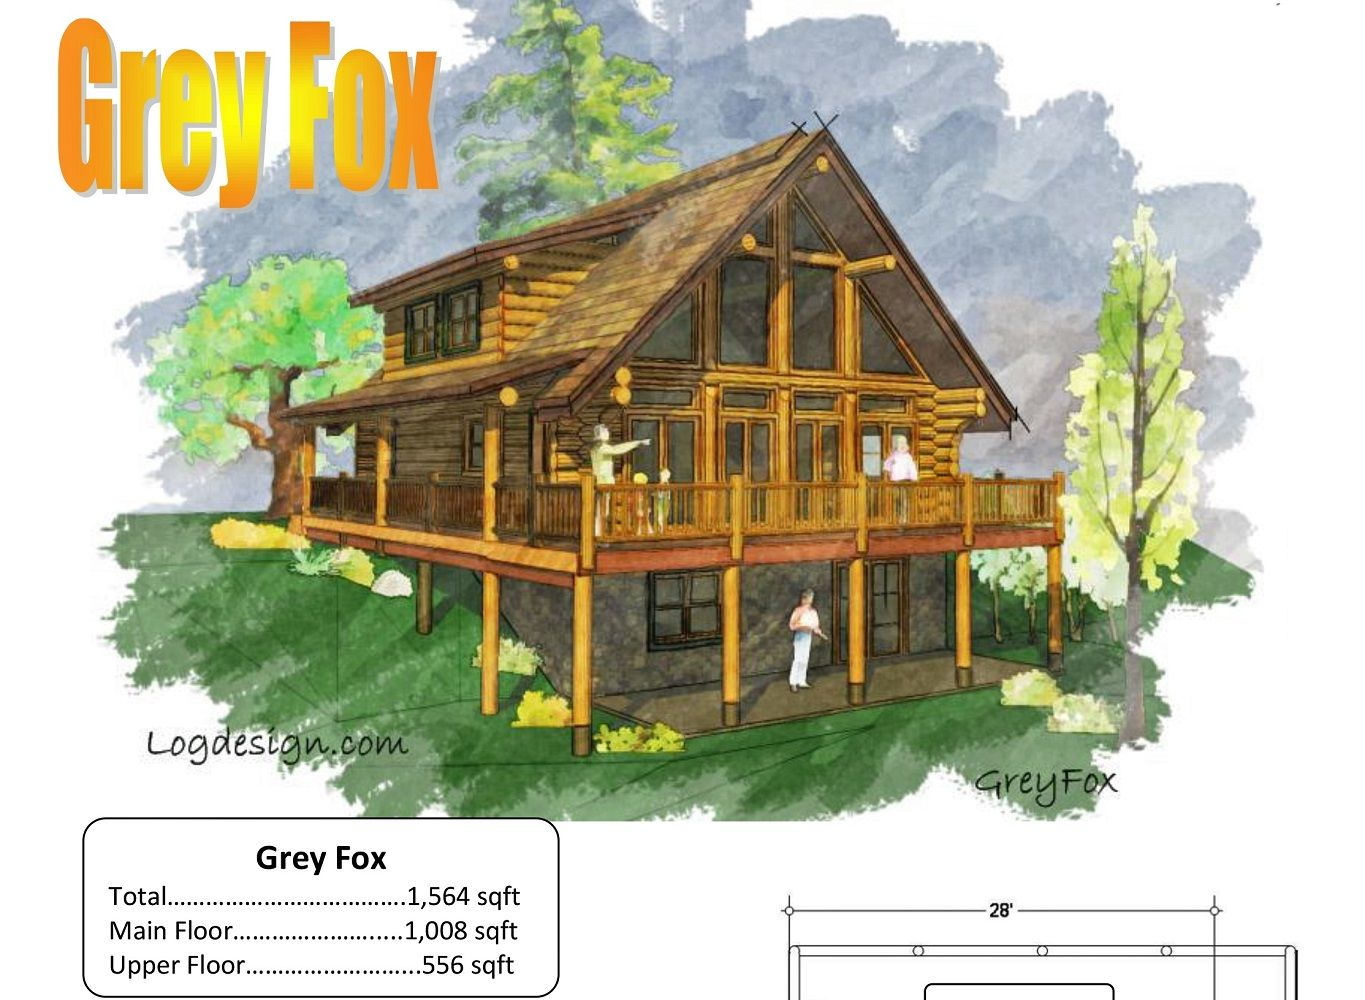 Superbe Log Homes In Idaho | True Log Homes | Log Cabin Kits